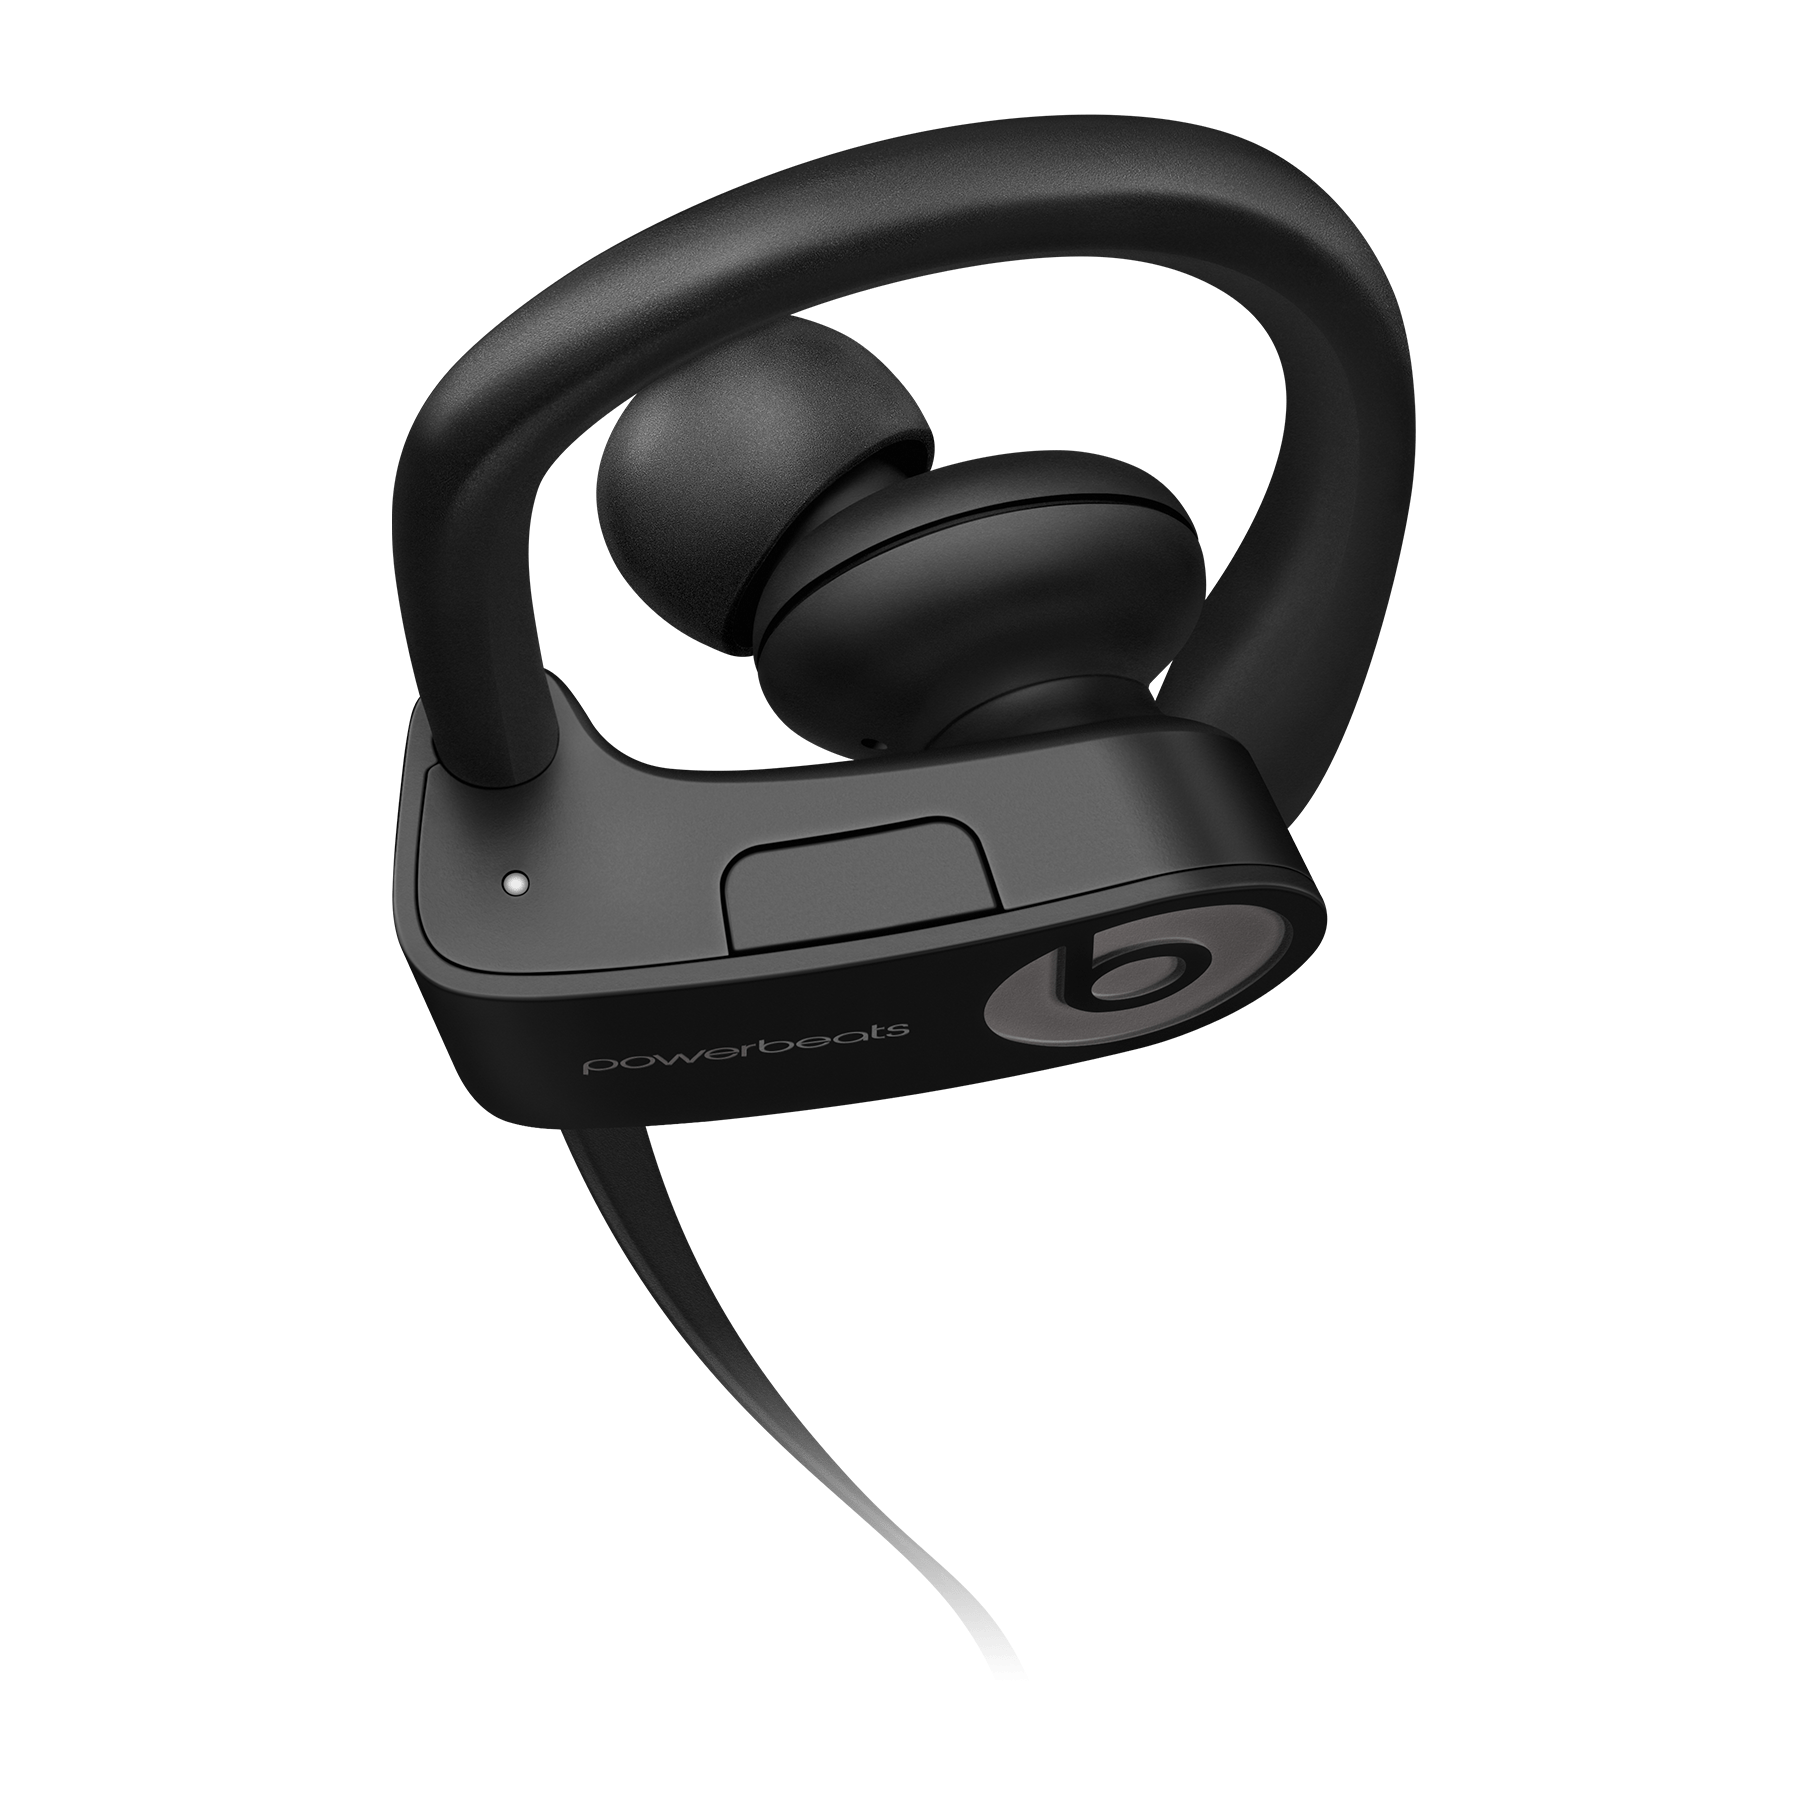 6f65592f078 Powerbeats3 Wireless - Beats by Dre